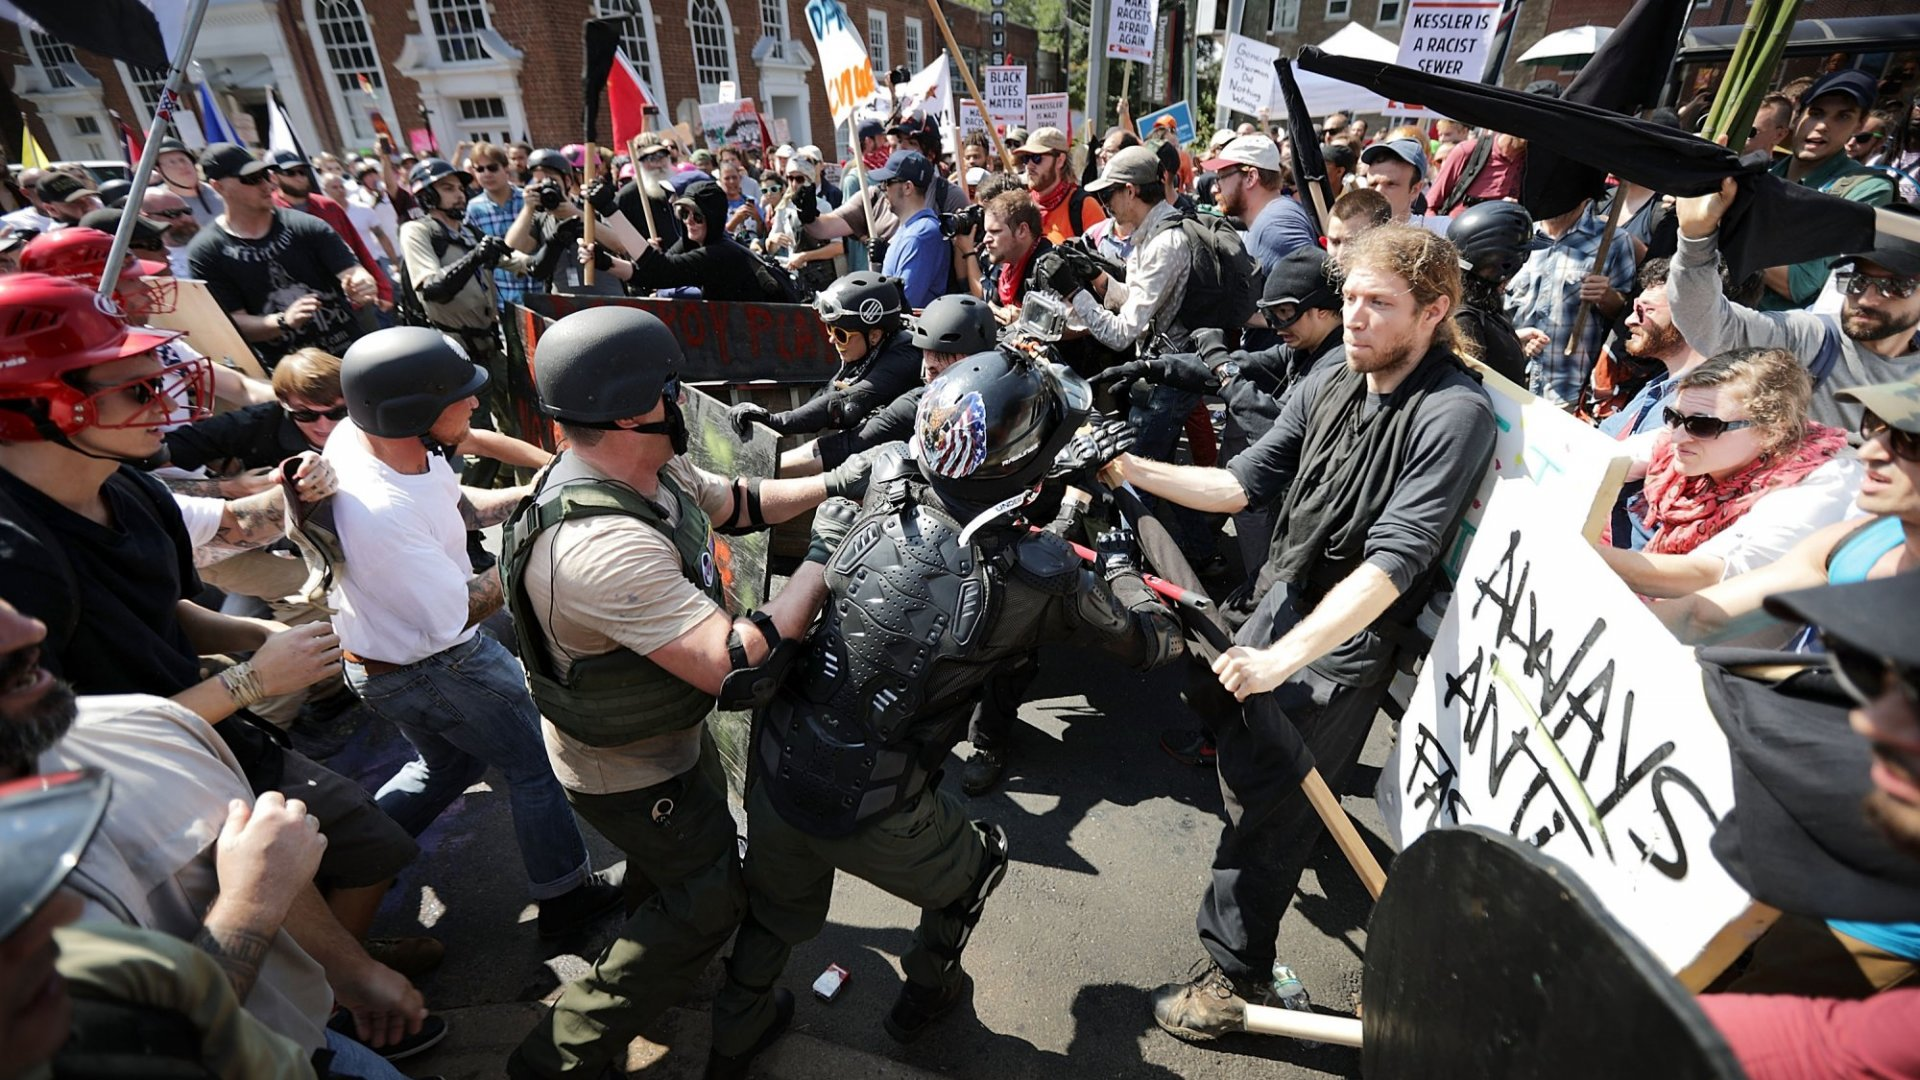 Should You Fire the Charlottesville Protesters?